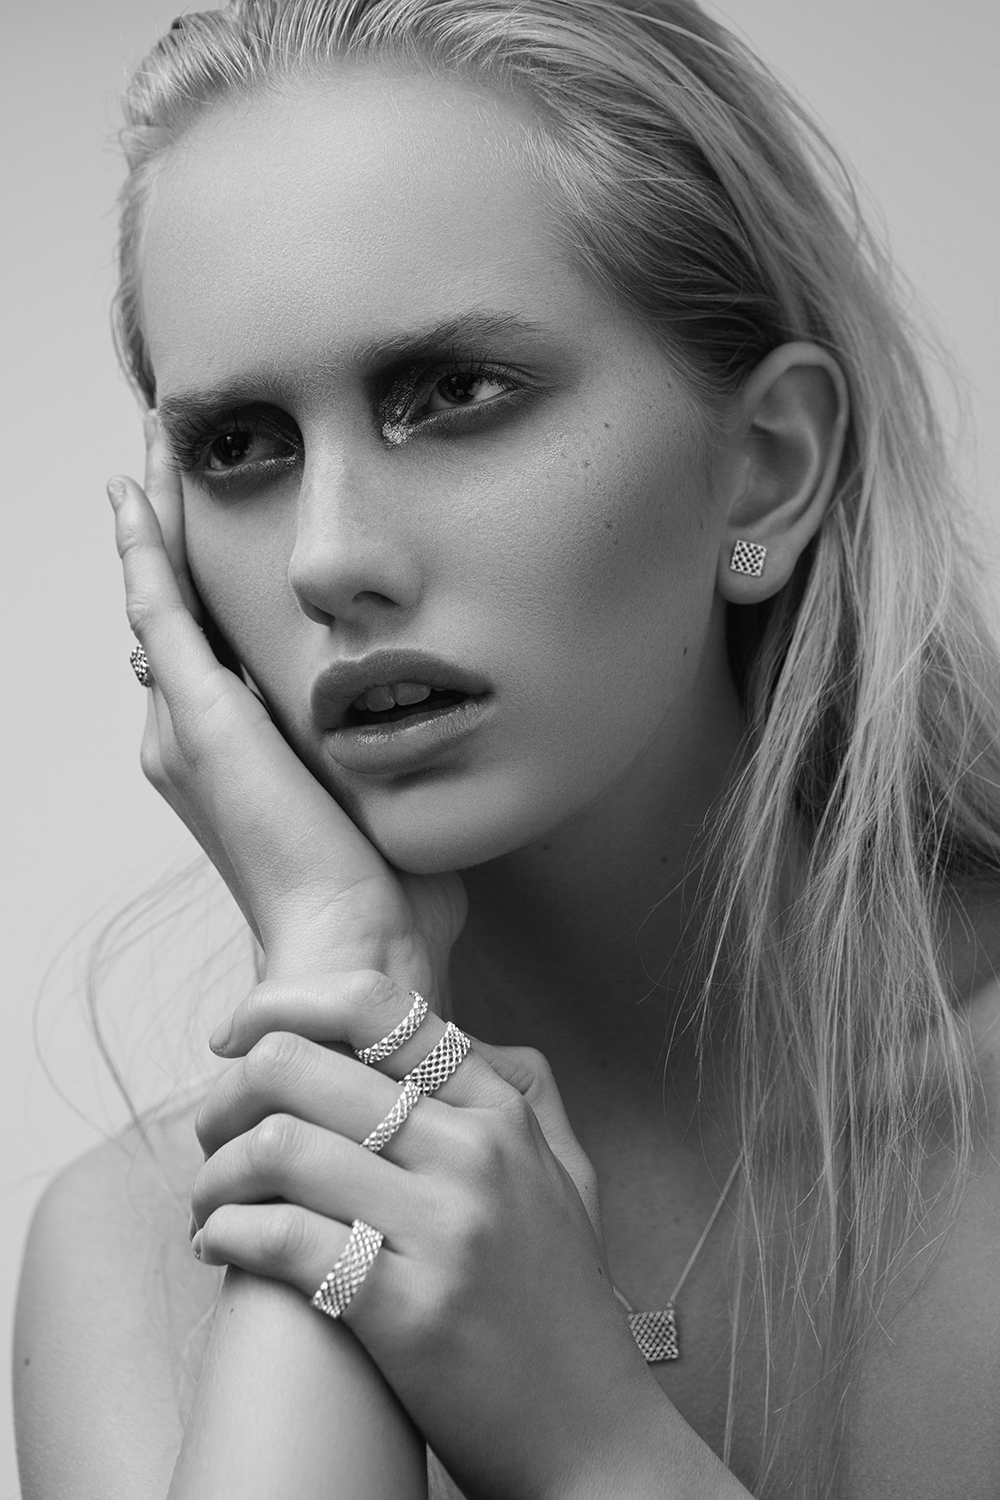 MA Photography Alumni Kári Sverriss spends time between Hamburg, London and Iceland for beauty and fashion shoots.